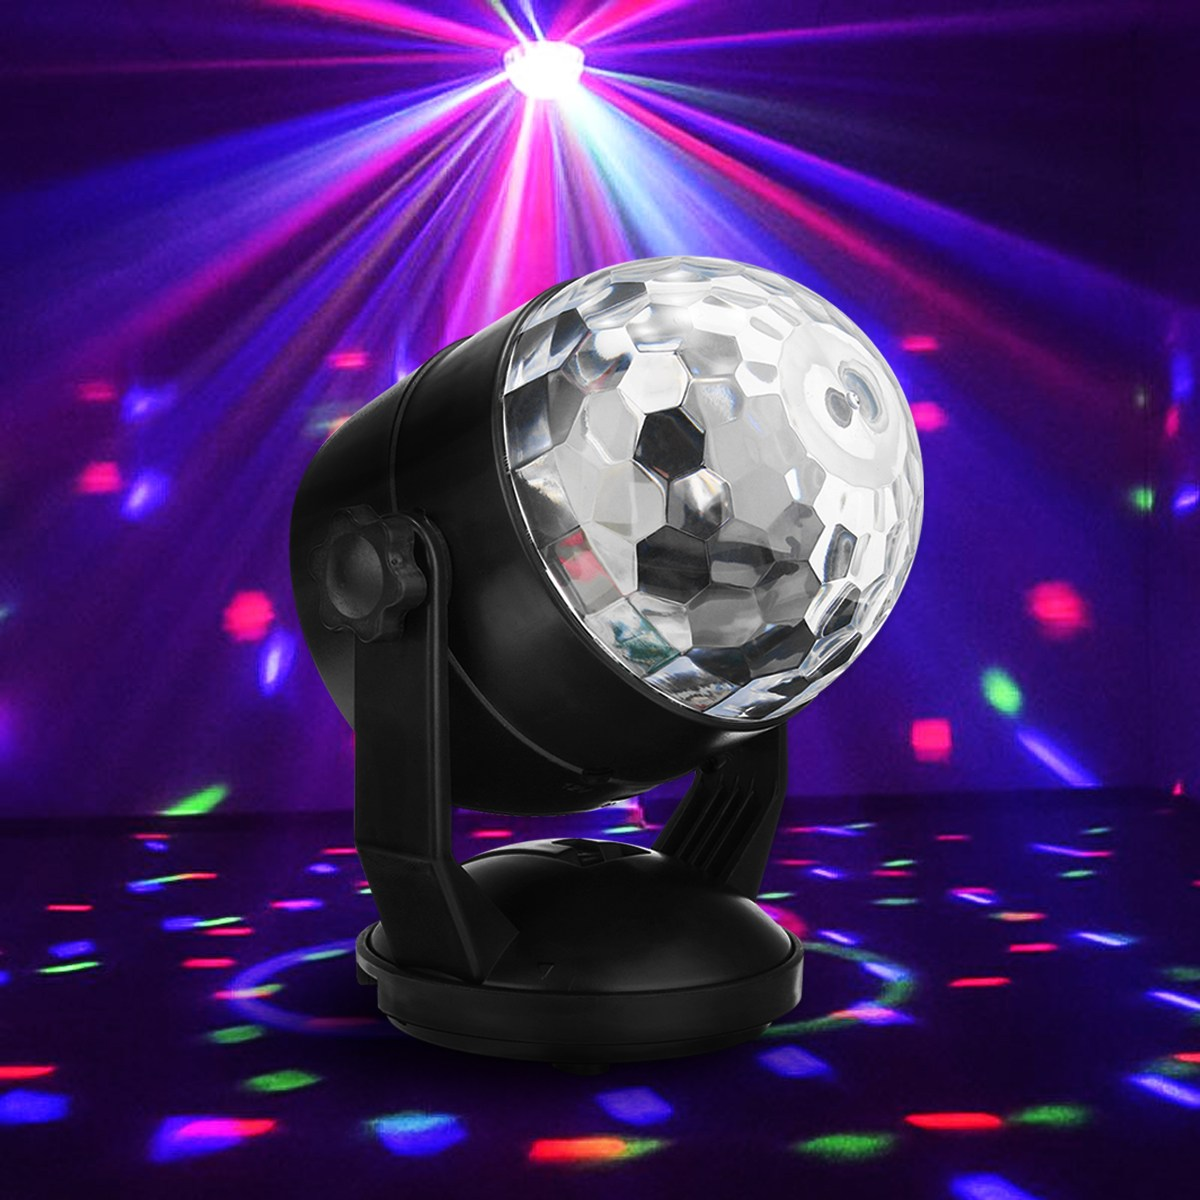 Mini Crystal Magic Ball Auto LED RGB Stage Light Voice Sound Control Night Lamp USB Battery Power Disco DJ Club Bar Party Decor mipow btl300 creative led light bluetooth aromatherapy flameless candle voice control lamp holiday party decoration gift